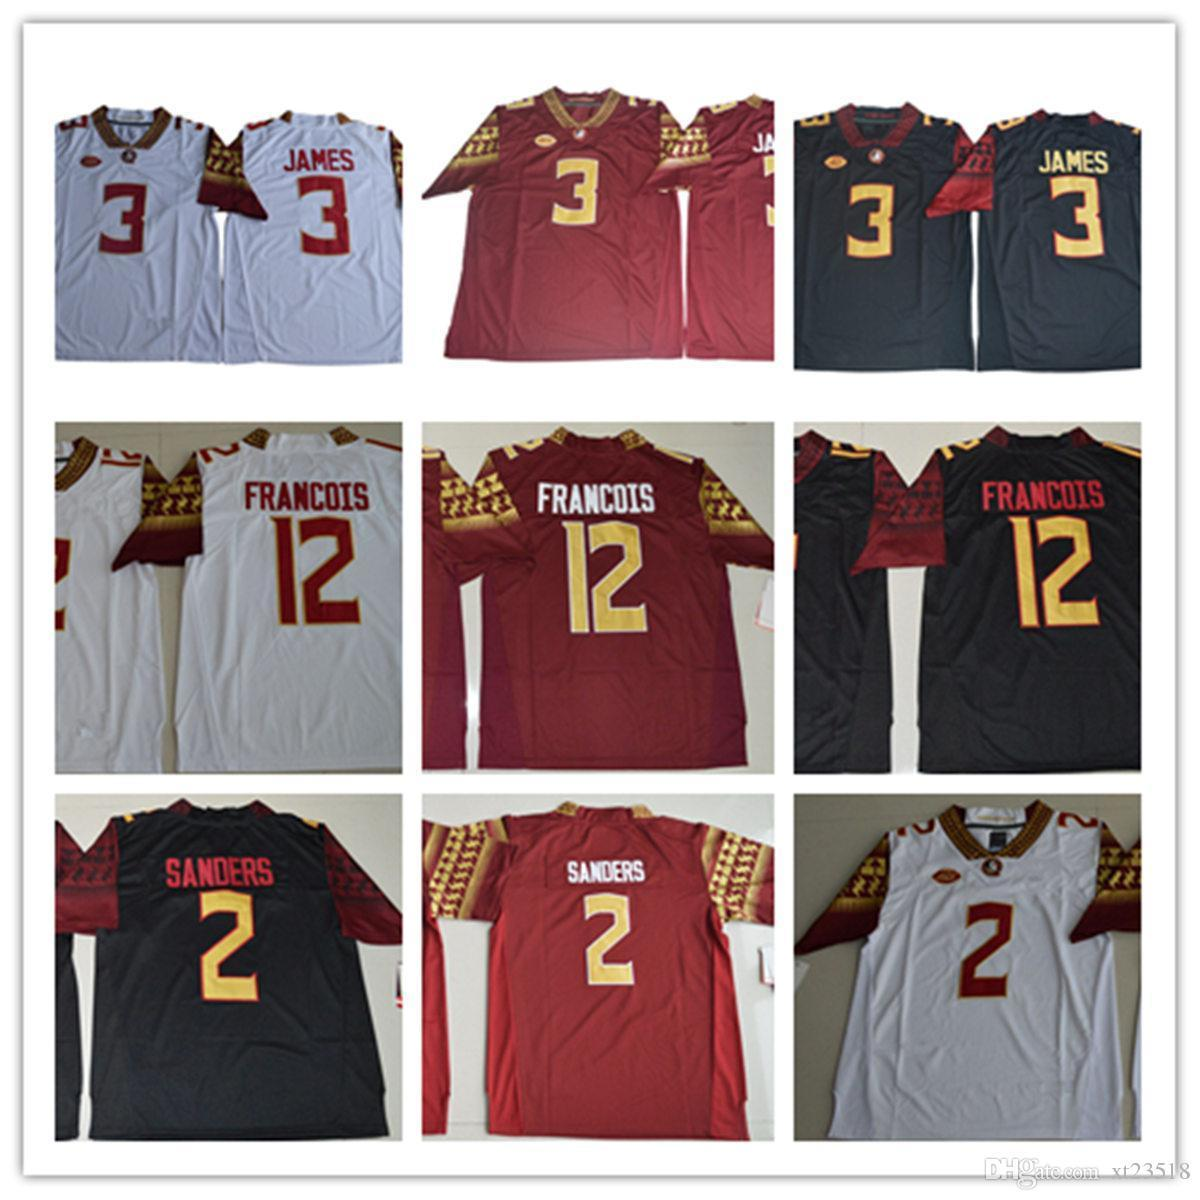 the best attitude 49a6f b61d8 Mens NCAA ACC FSU Derwin James College Football Jerseys #2 Deion Sanders 12  Deondre Francois Florida State Seminoles Jersey S-3XL